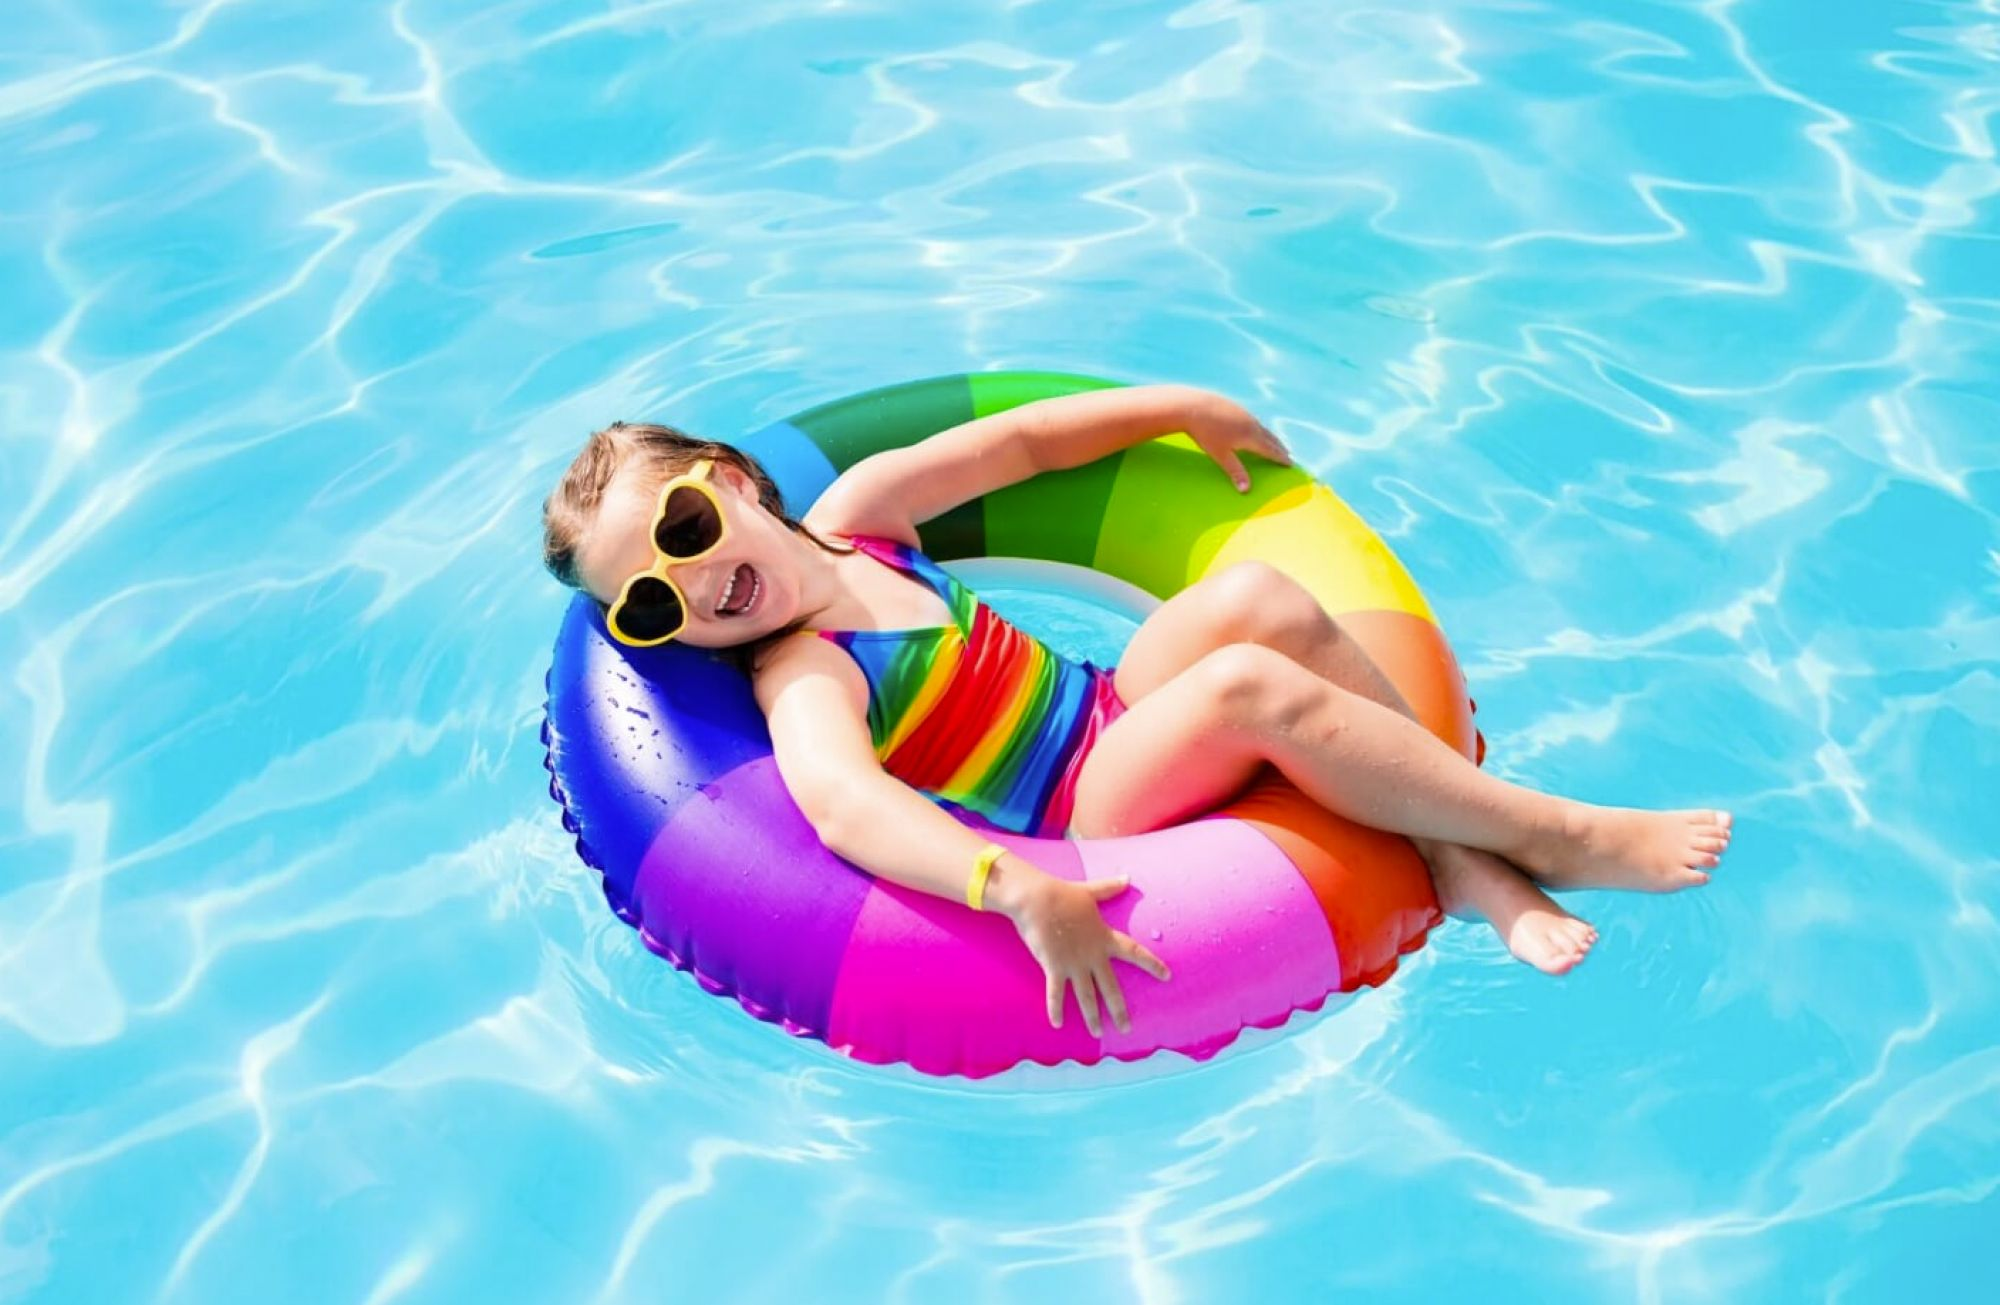 Pool safety: Equipment you should consider installing